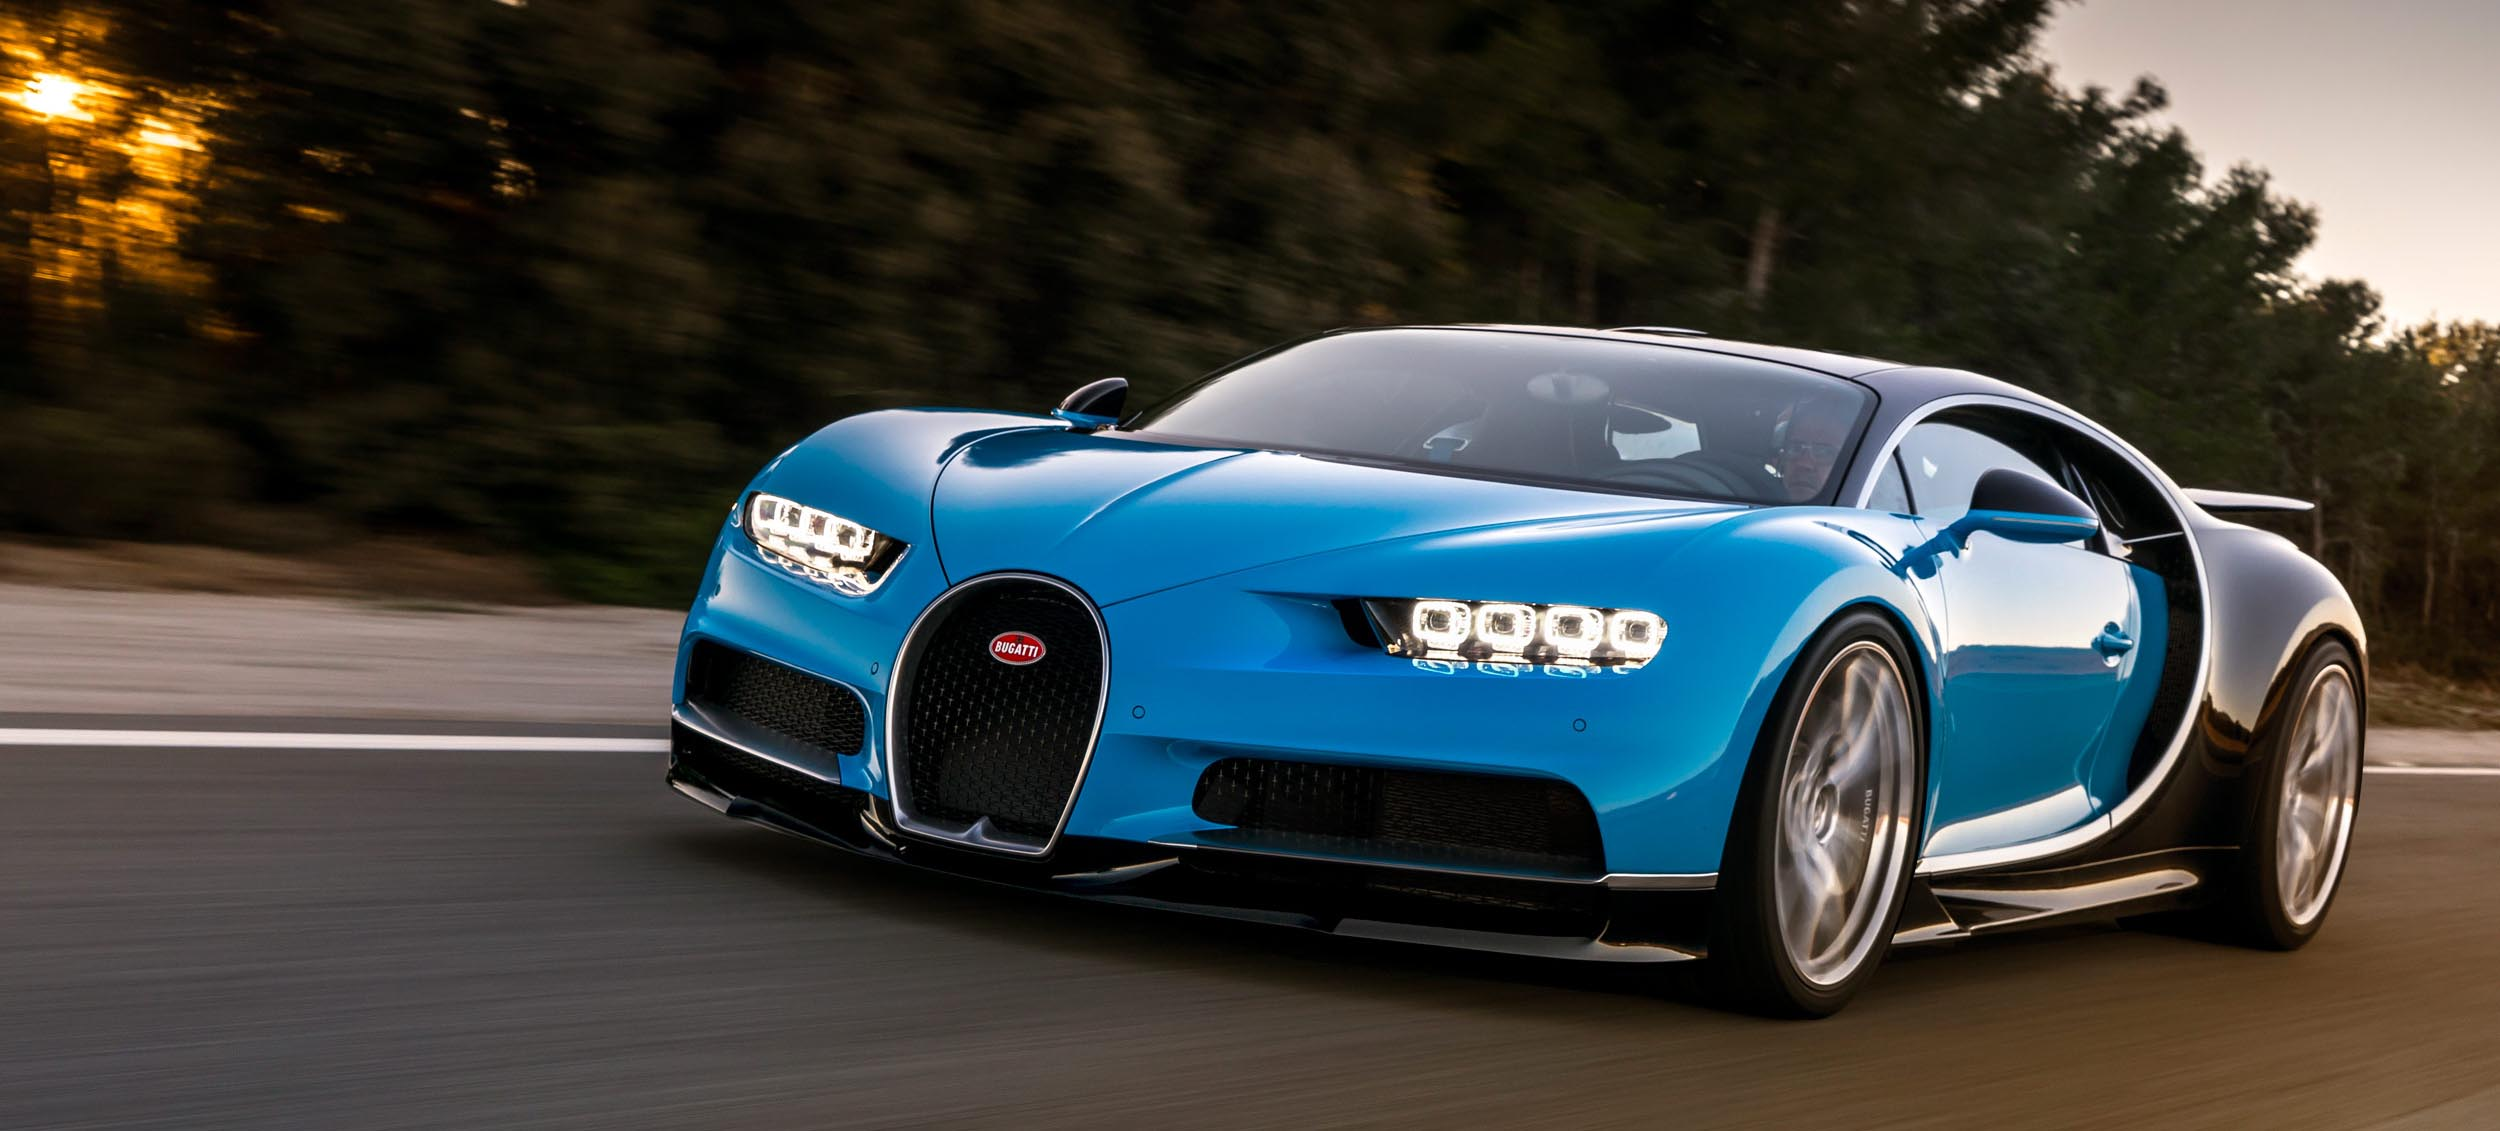 bugatti-chiron-best-super-cars-most-expensive-cars-in-the-world-sexy-cars-list